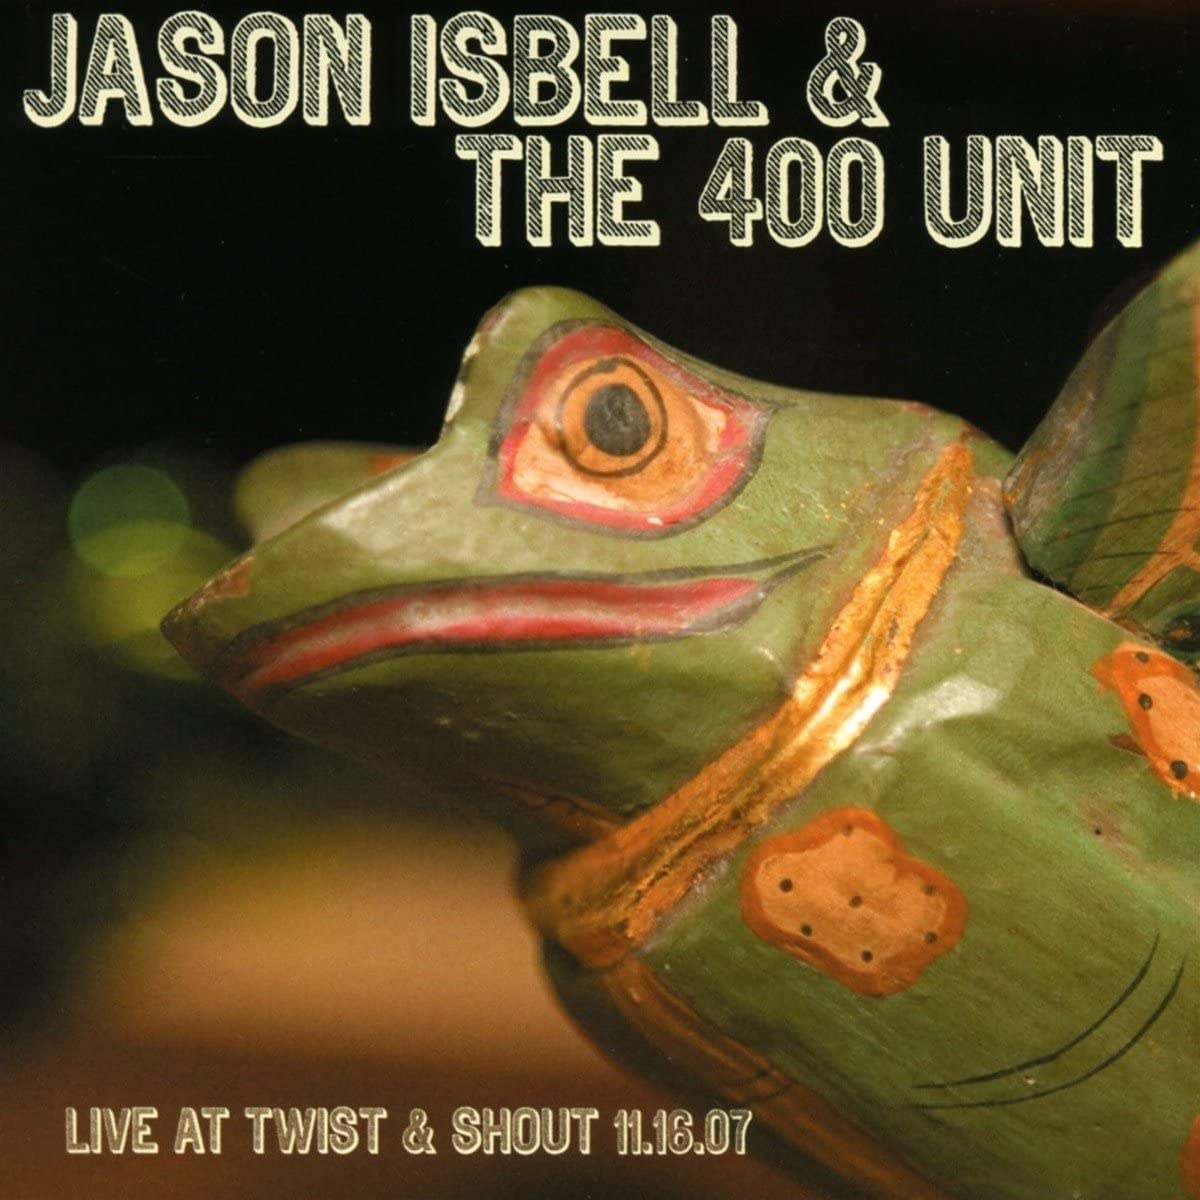 Isbell, Jason/Live At The Twist & Shout 11.16.07 [CD]